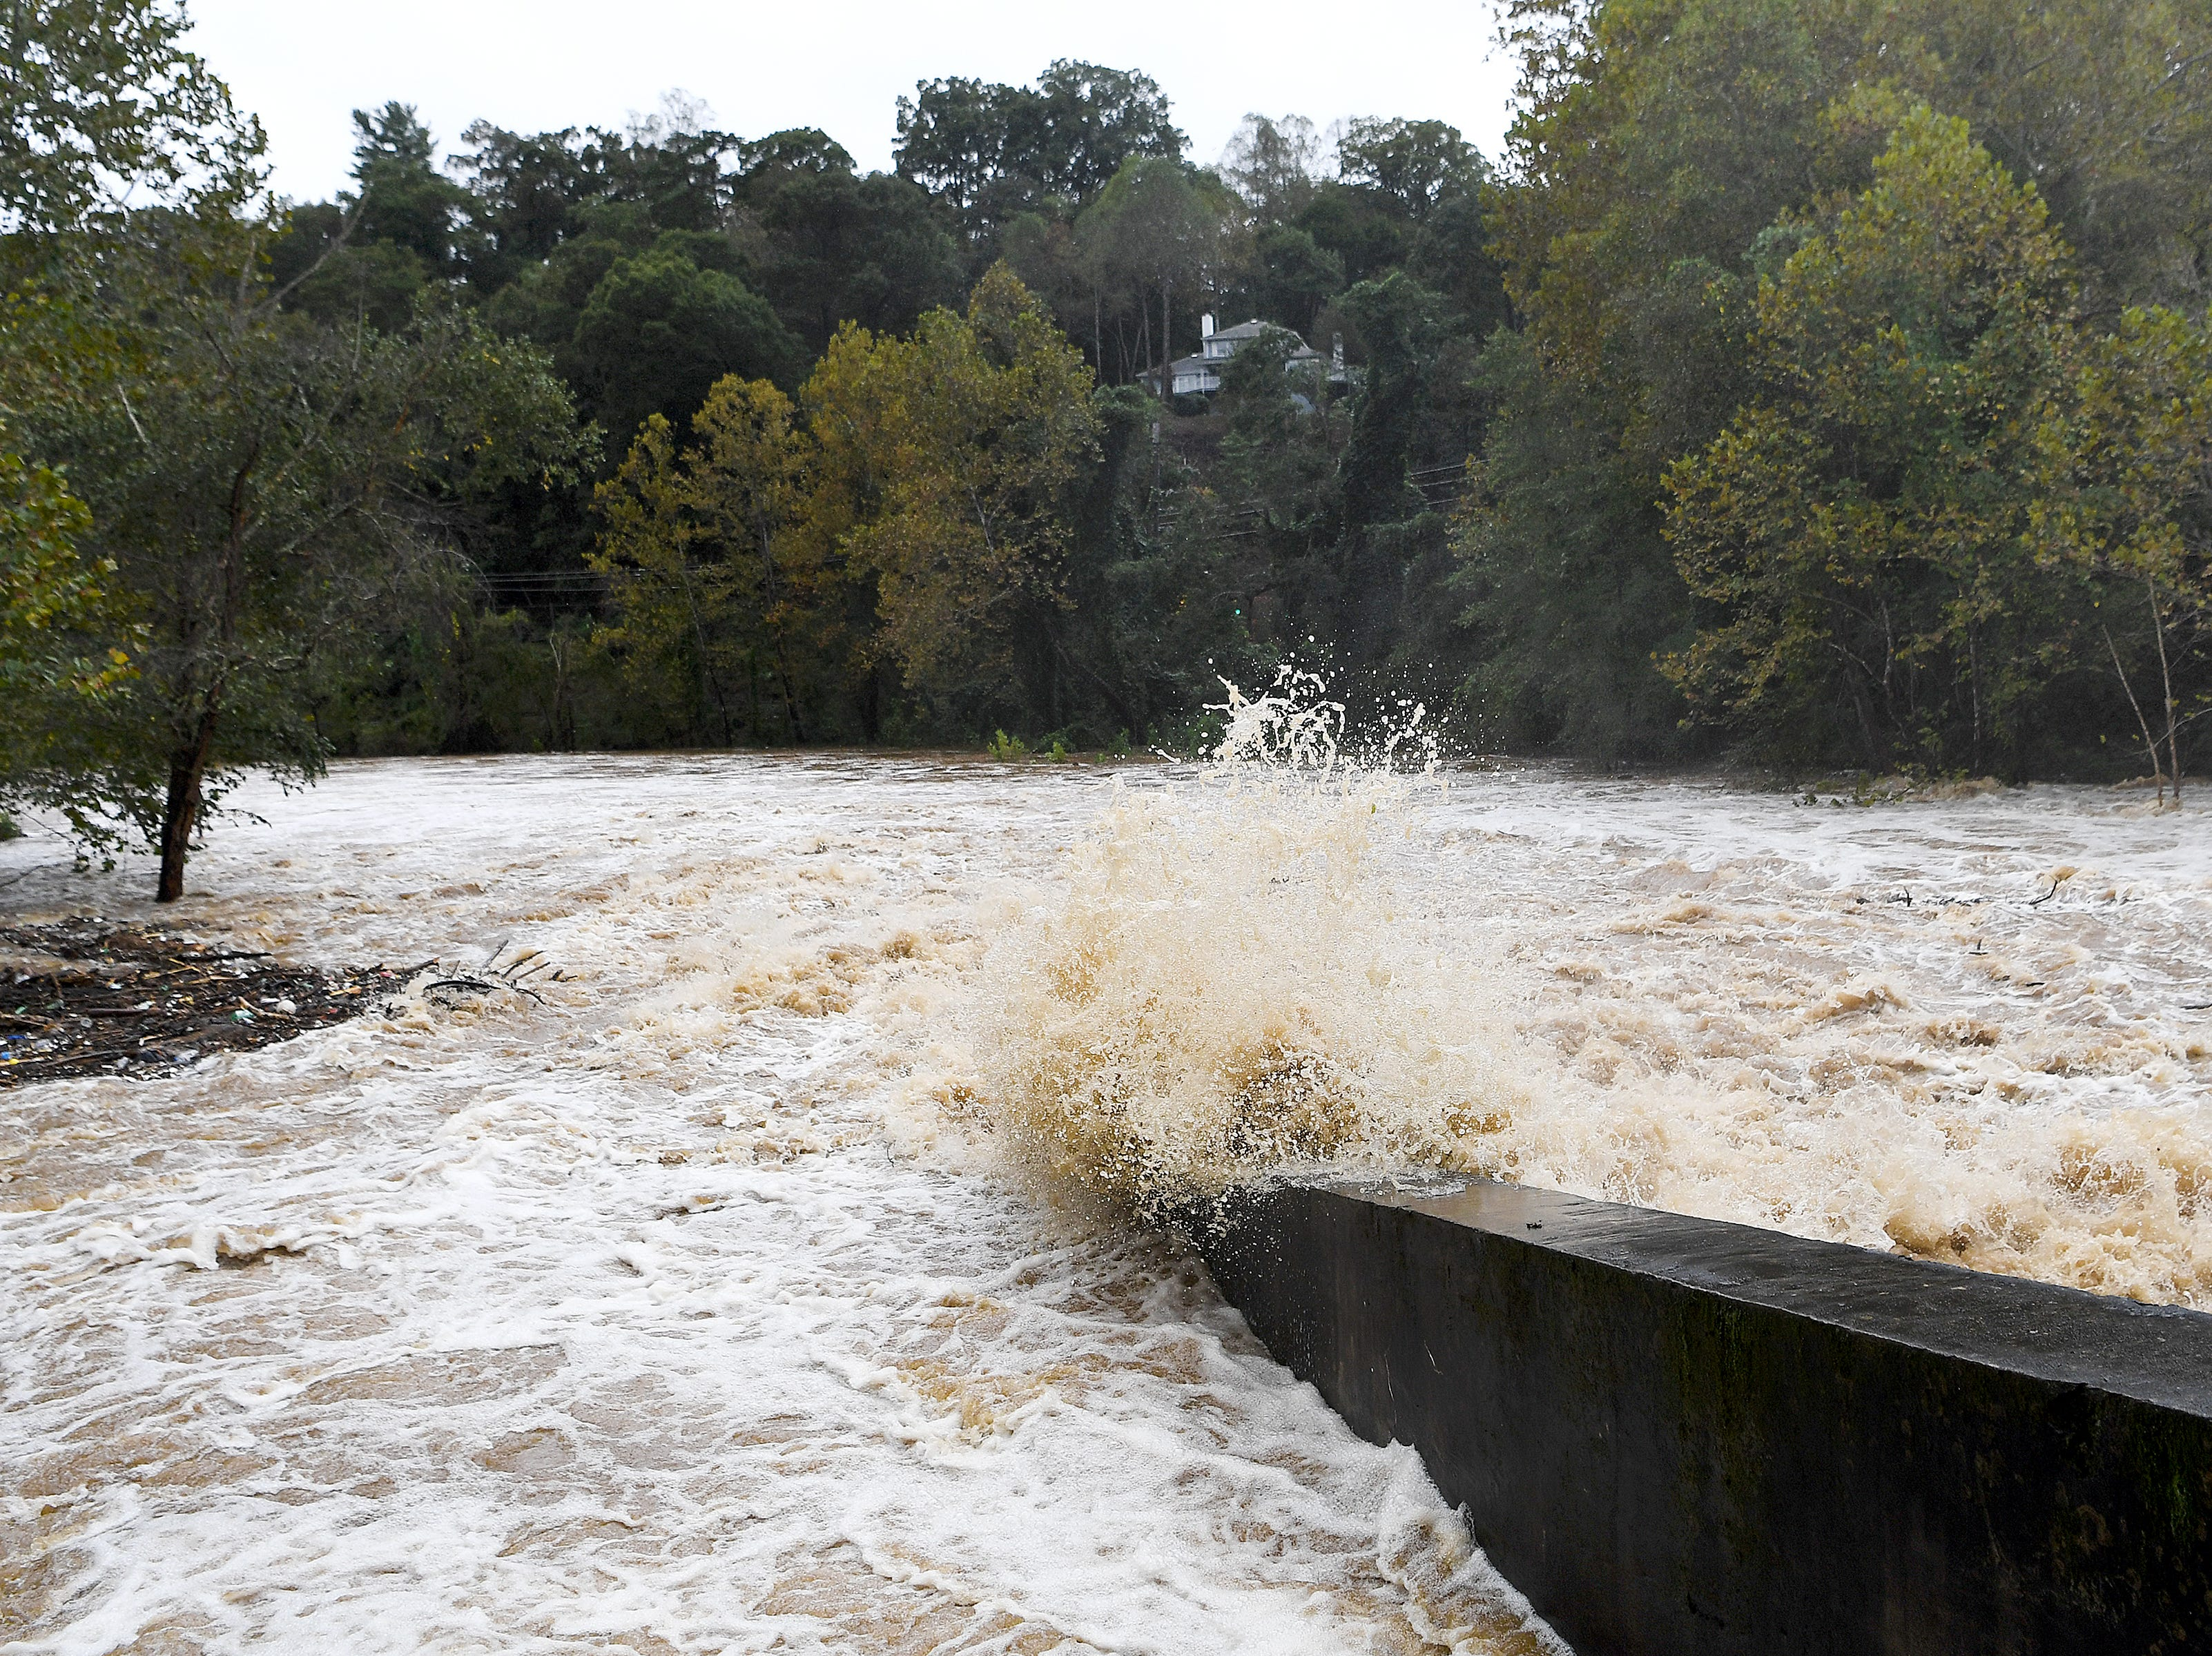 Water surges under Gashes Creek Road as the Swannanoa River floods due to rains from Hurricane Michael on Oct. 11, 2018.